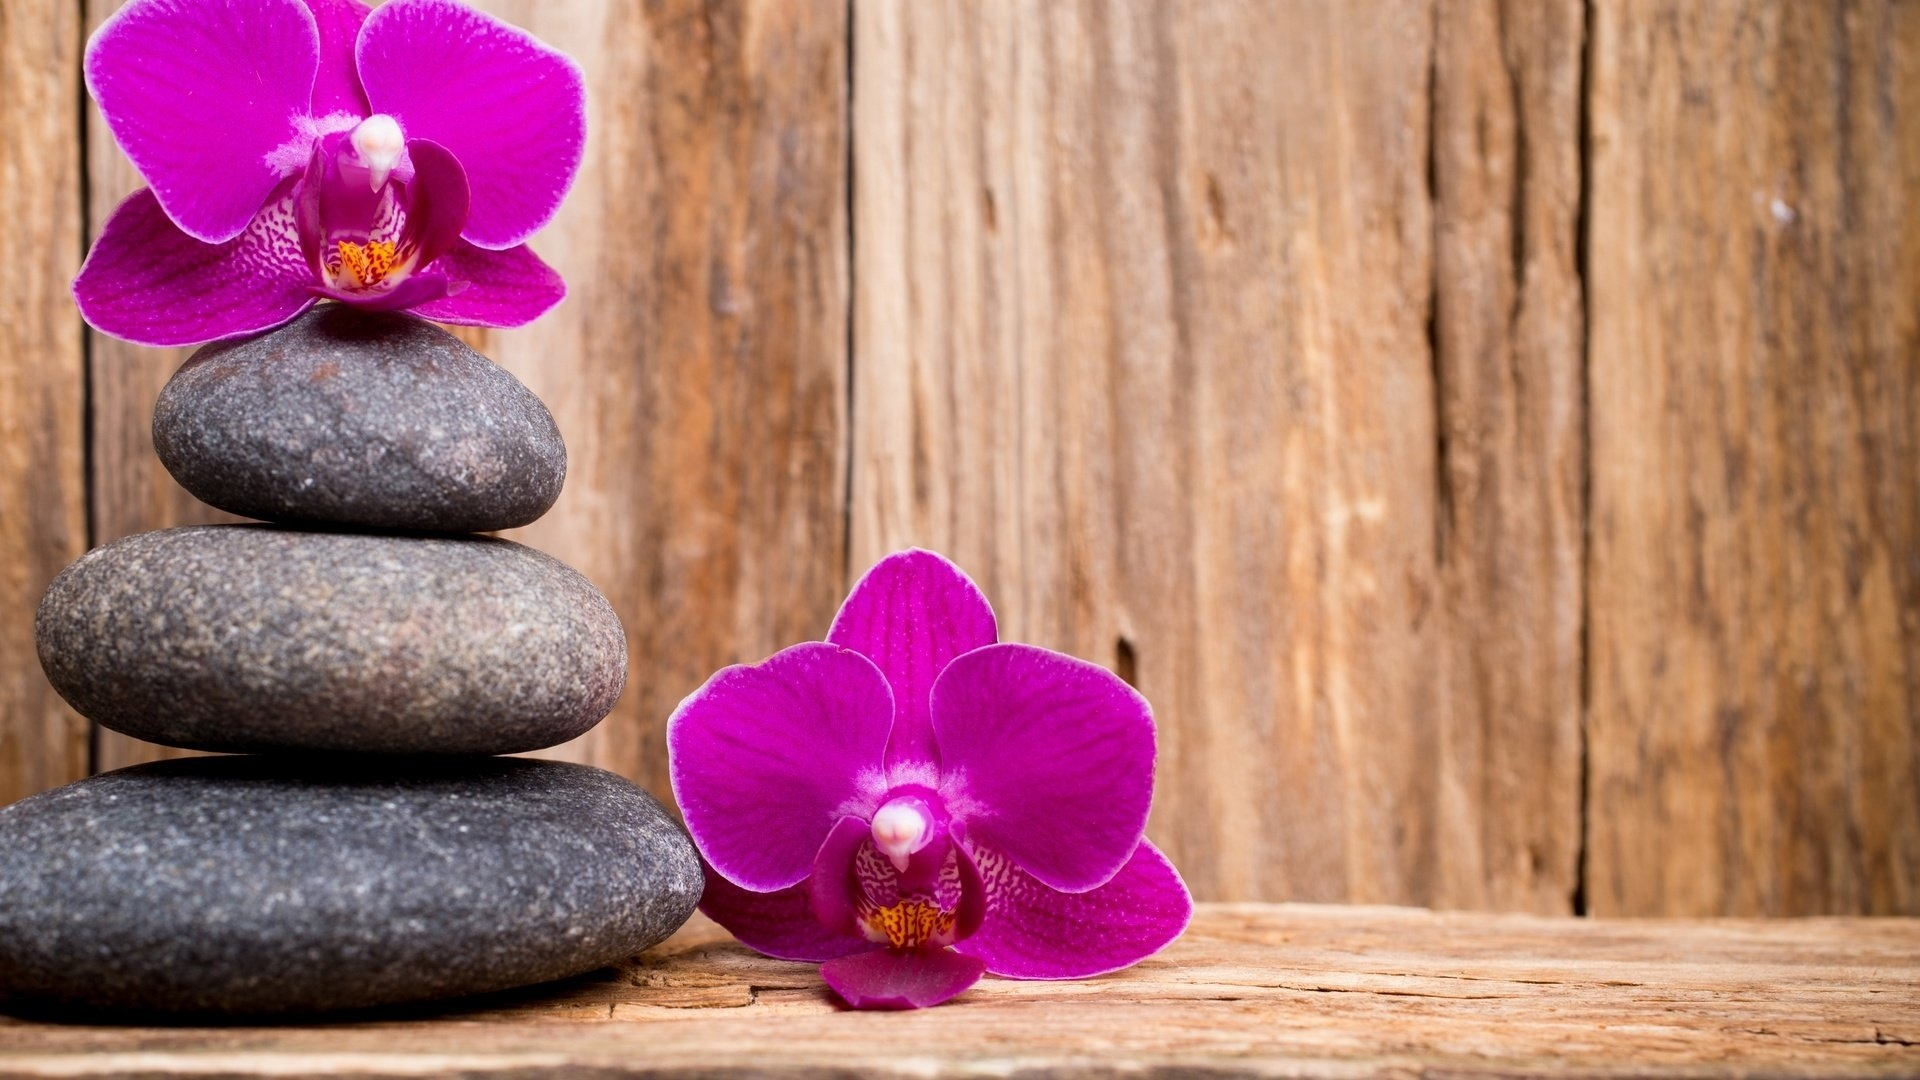 Flower And Stones Picture